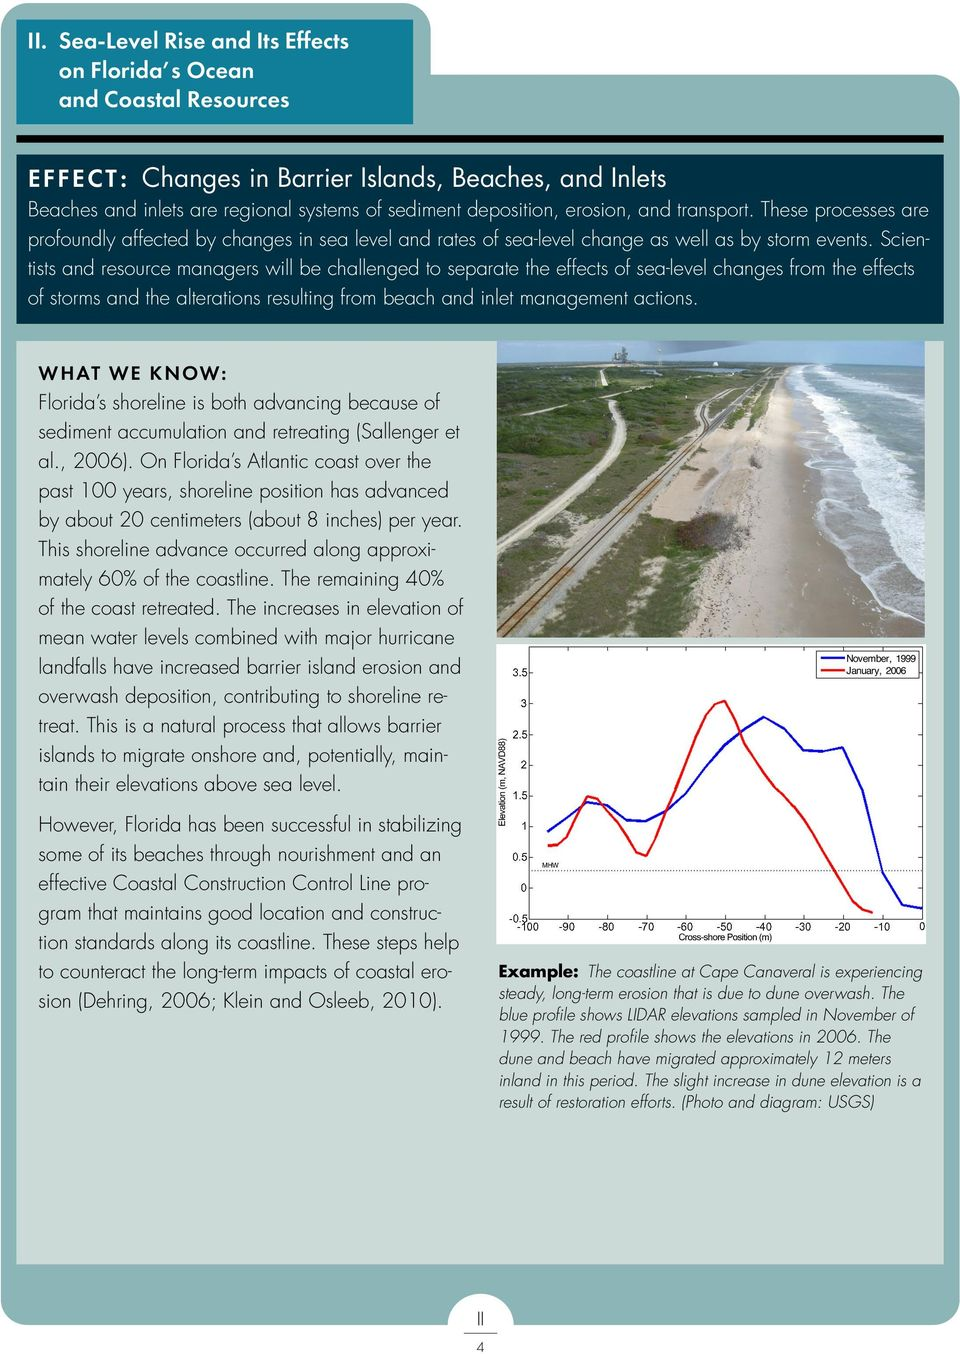 Scientists and resource managers will be challenged to separate the effects of sea-level changes from the effects of storms and the alterations resulting from beach and inlet management actions.